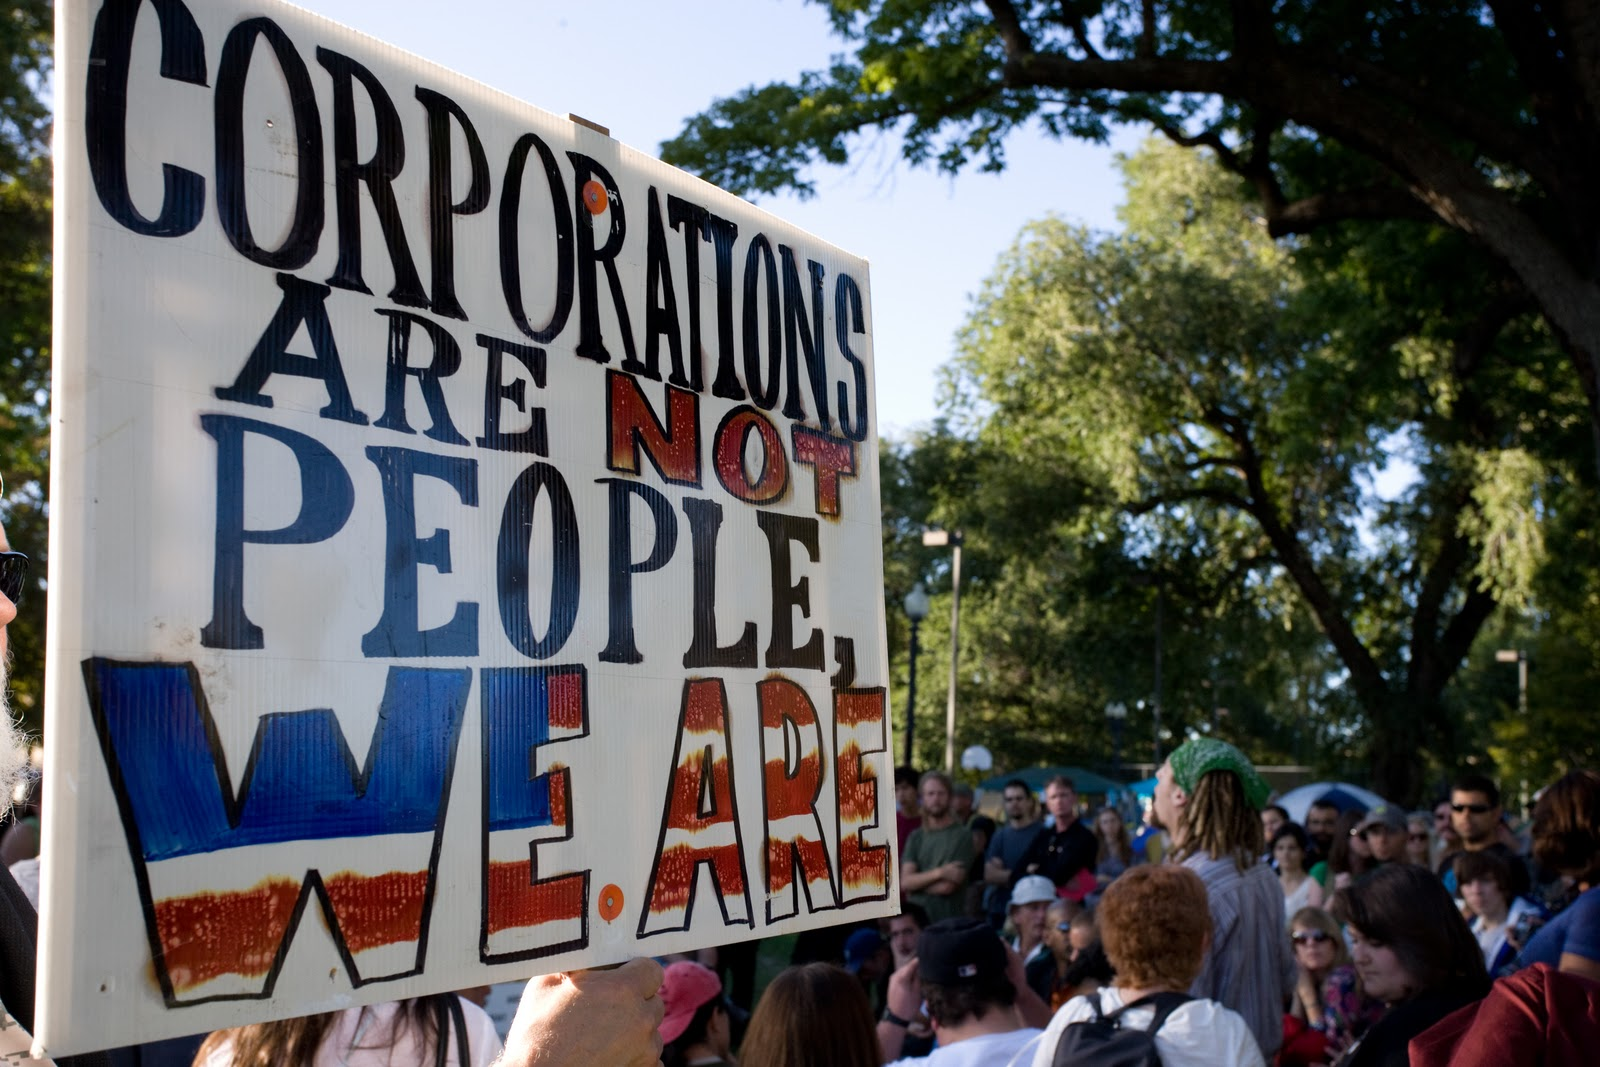 occupy wall street pros and cons essay Essay about occupy wall street movement more about occupy wall street movement: dead on arrival the pros and cons of fracking essay.